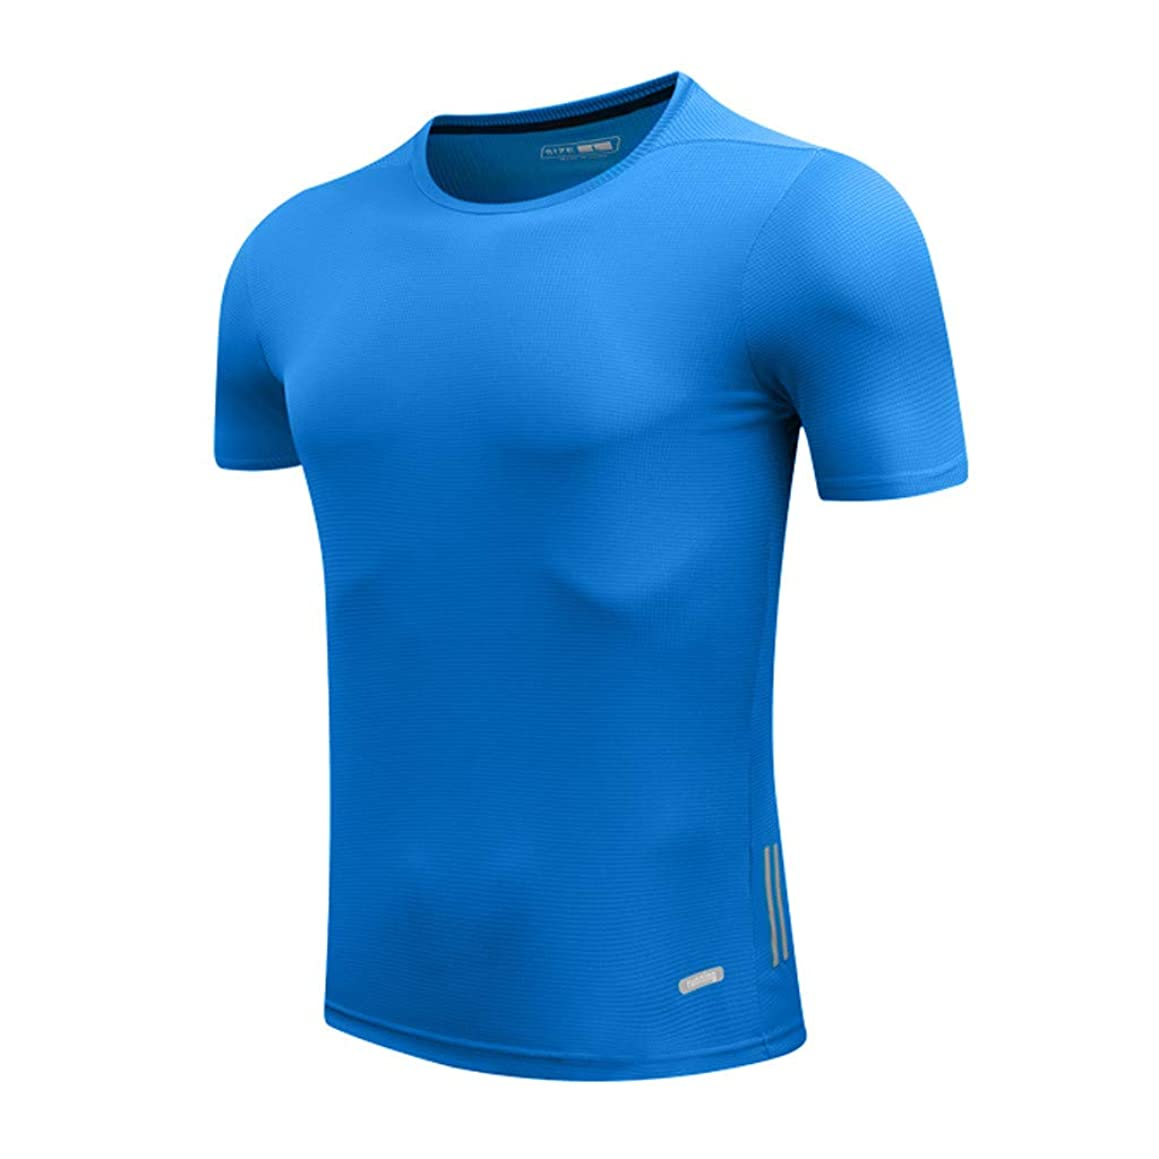 Rakkiss_Men T-Shirt Solid Silm Fit Tops Fast Drying Elastic Sports Tee Breathable Tight Summer Clothes